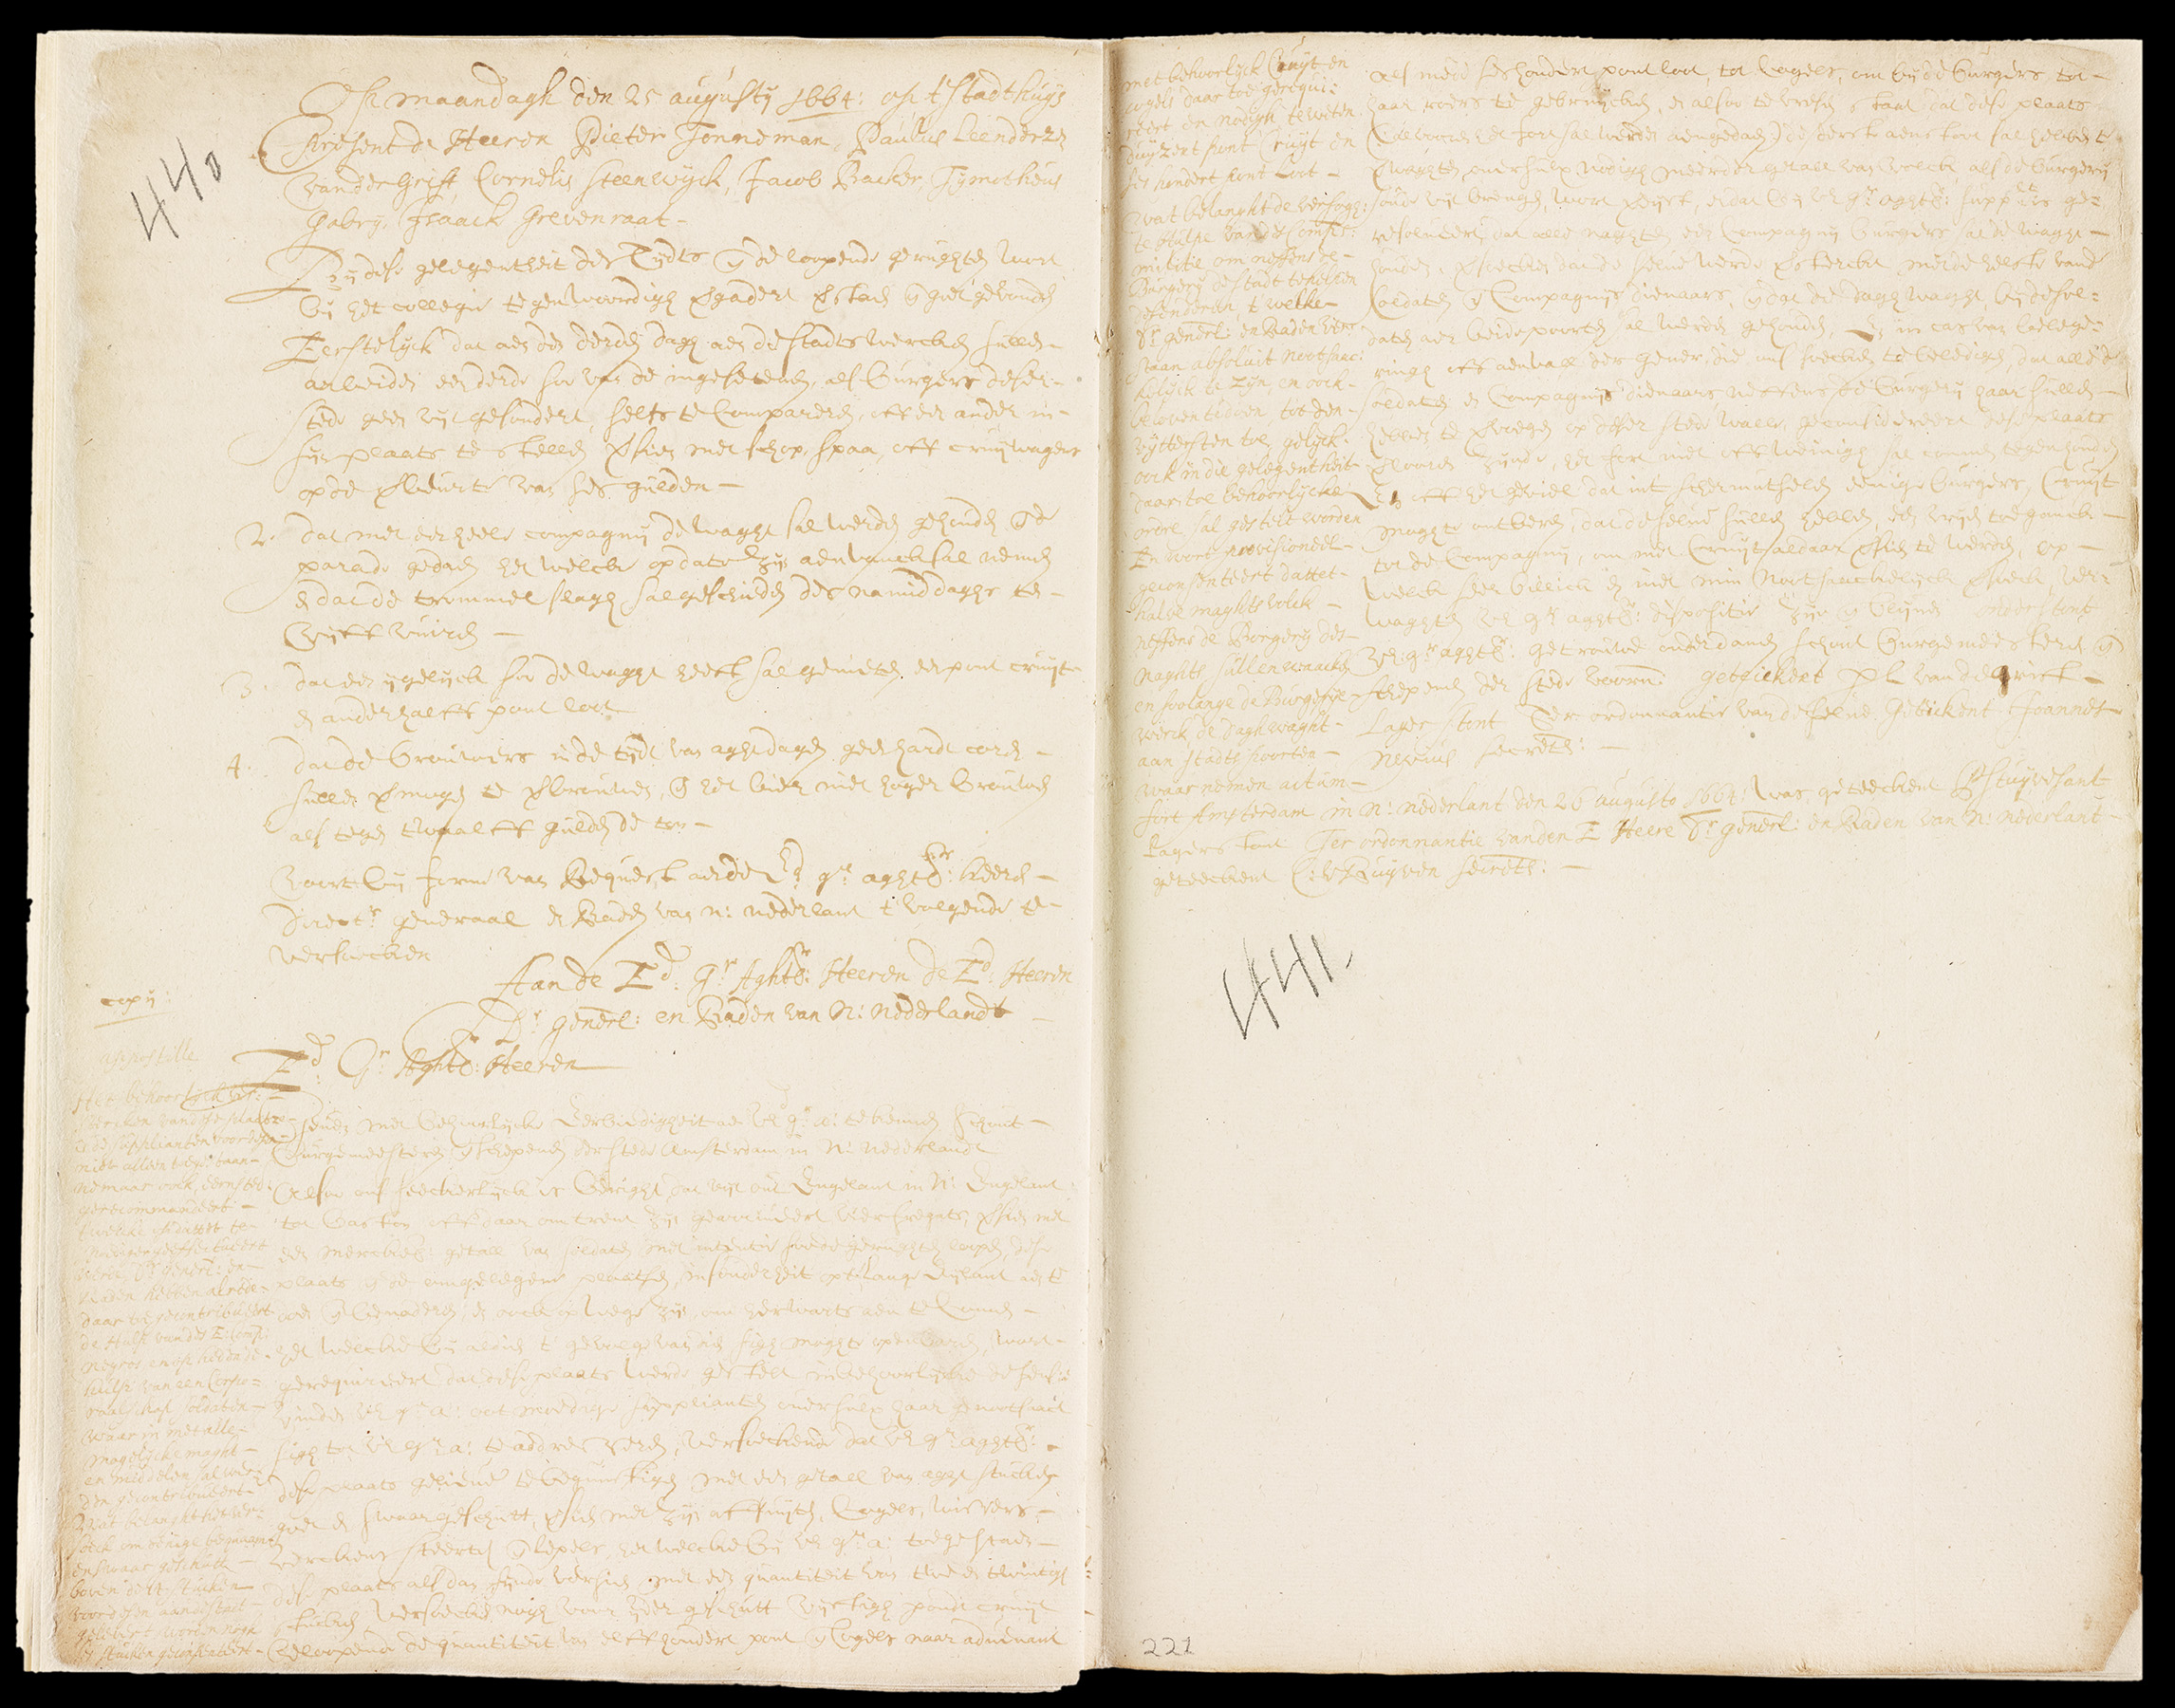 """The minutes from August 25th, 1664, the day the Burgomasters and Schepens were informed of the English fleet at Boston preparing to sail for New Amsterdam. The marginal Appostille is from General Stuyvesant, who concurred that """"The proper fortifying of this place is not only granted..., but also earnestly recommended."""" In a possibly apocryphal story, Stuyvesant was presented with an early draft of the articles of surrender on August 22nd, but no such event was recorded in the official record."""